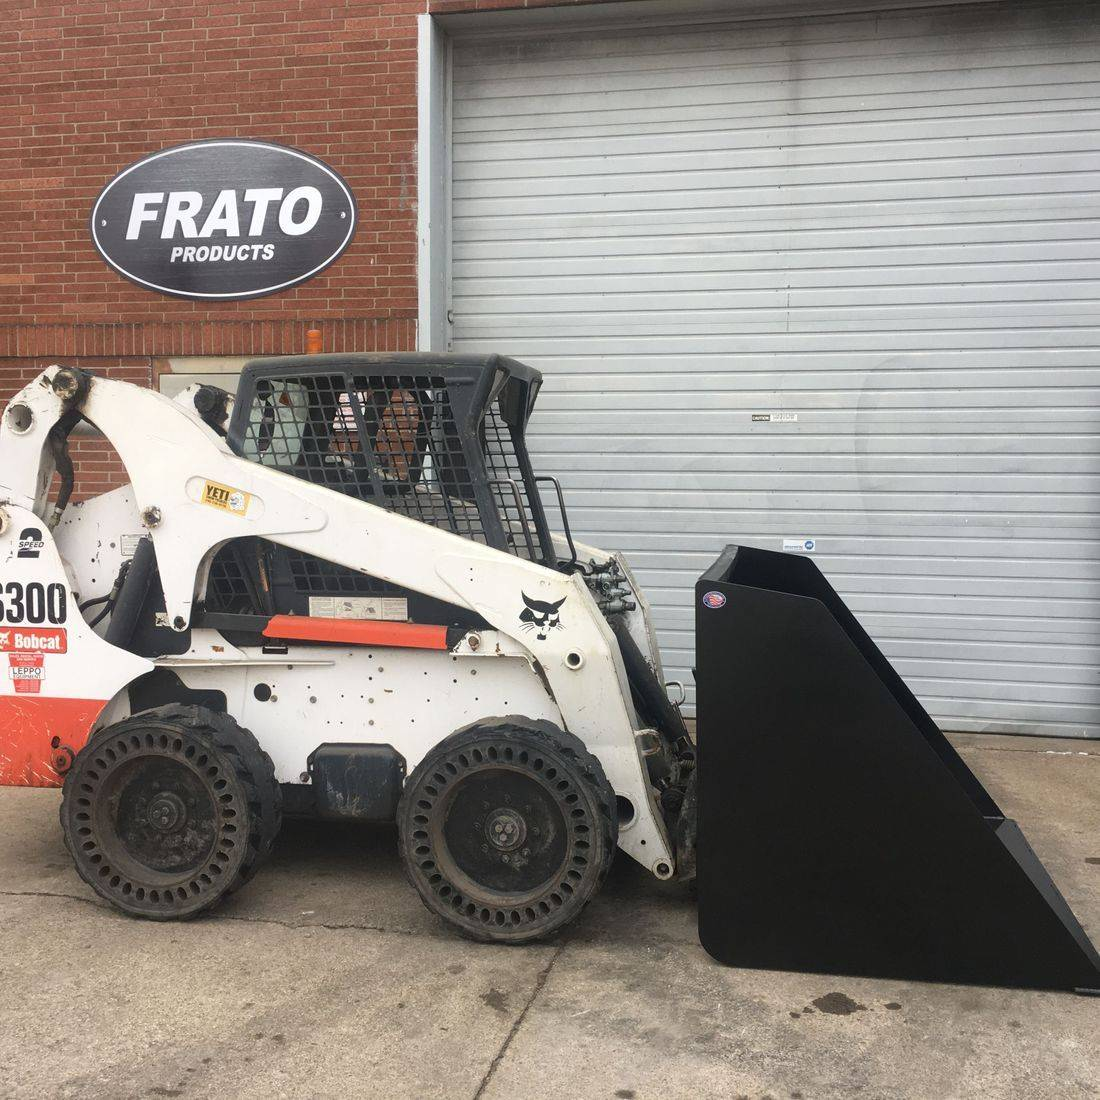 Frato Products - Skid-Steer Attachments